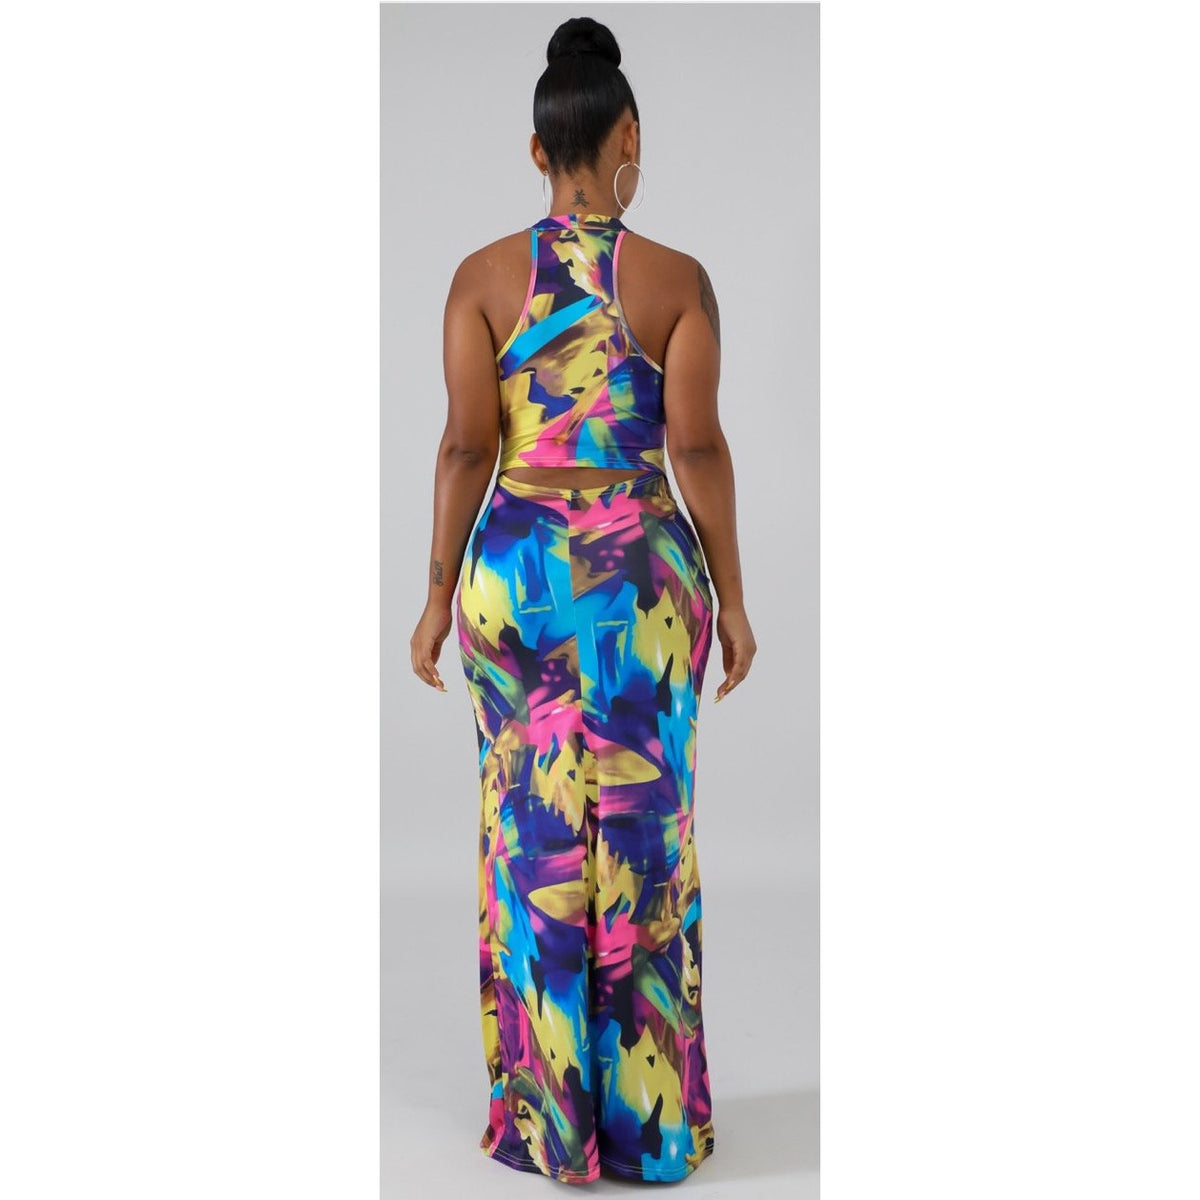 Water Color Tie Dye Maxi Dress